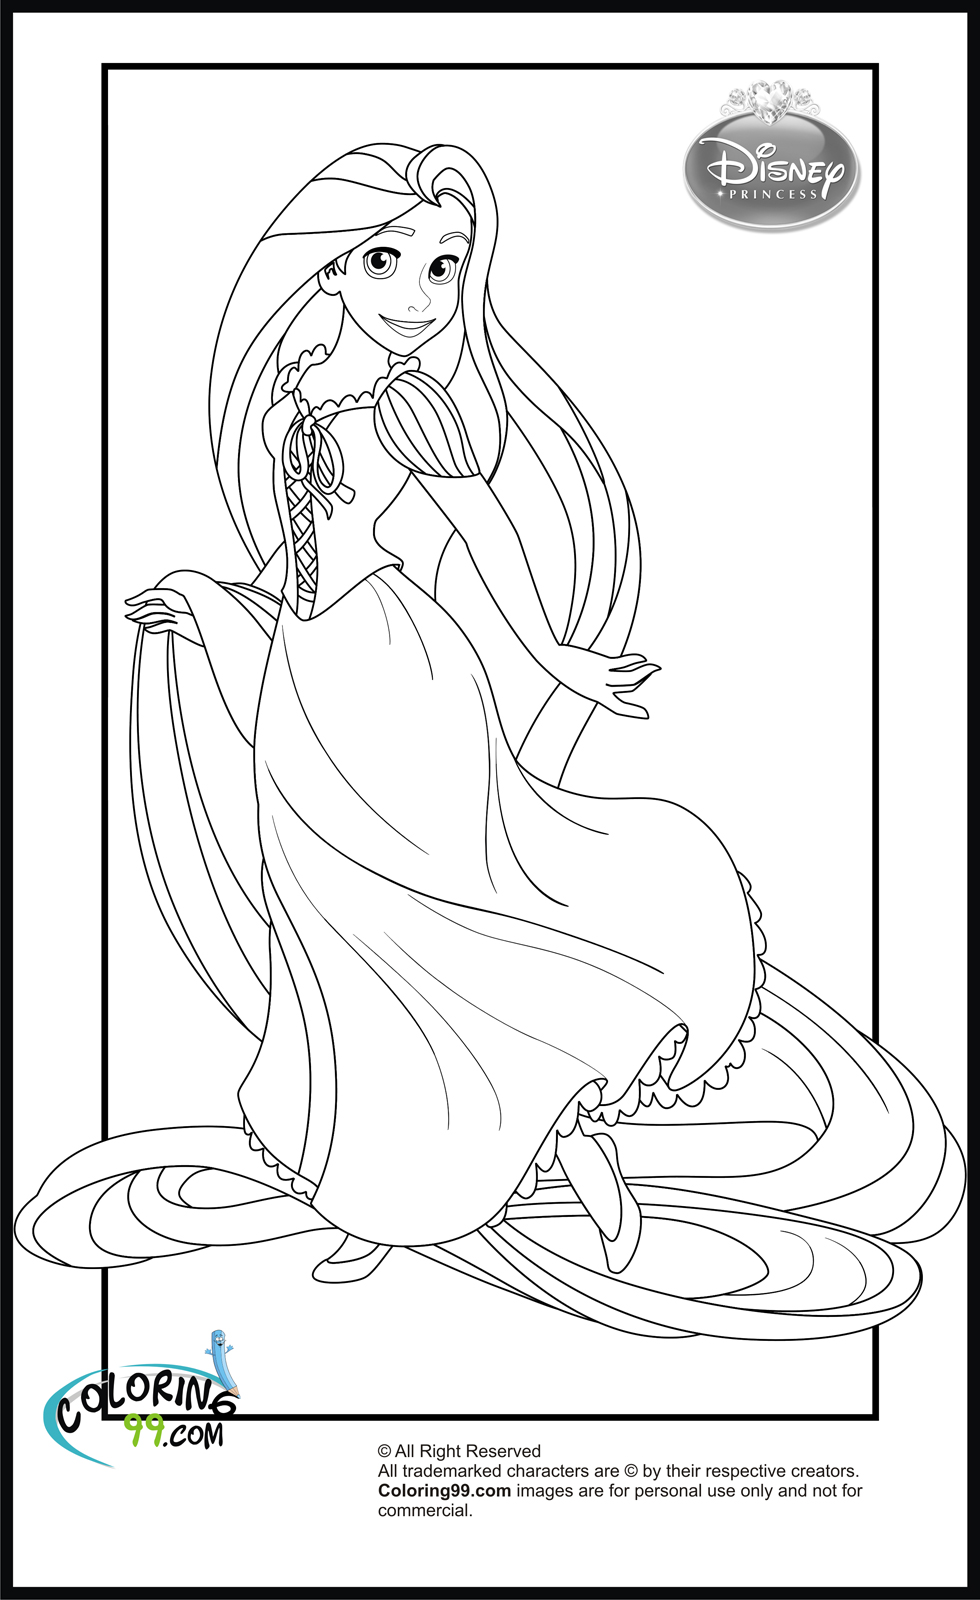 Disney Princess Coloring Pages Minister Coloring Disney Princess Coloring Pages Rapunzel